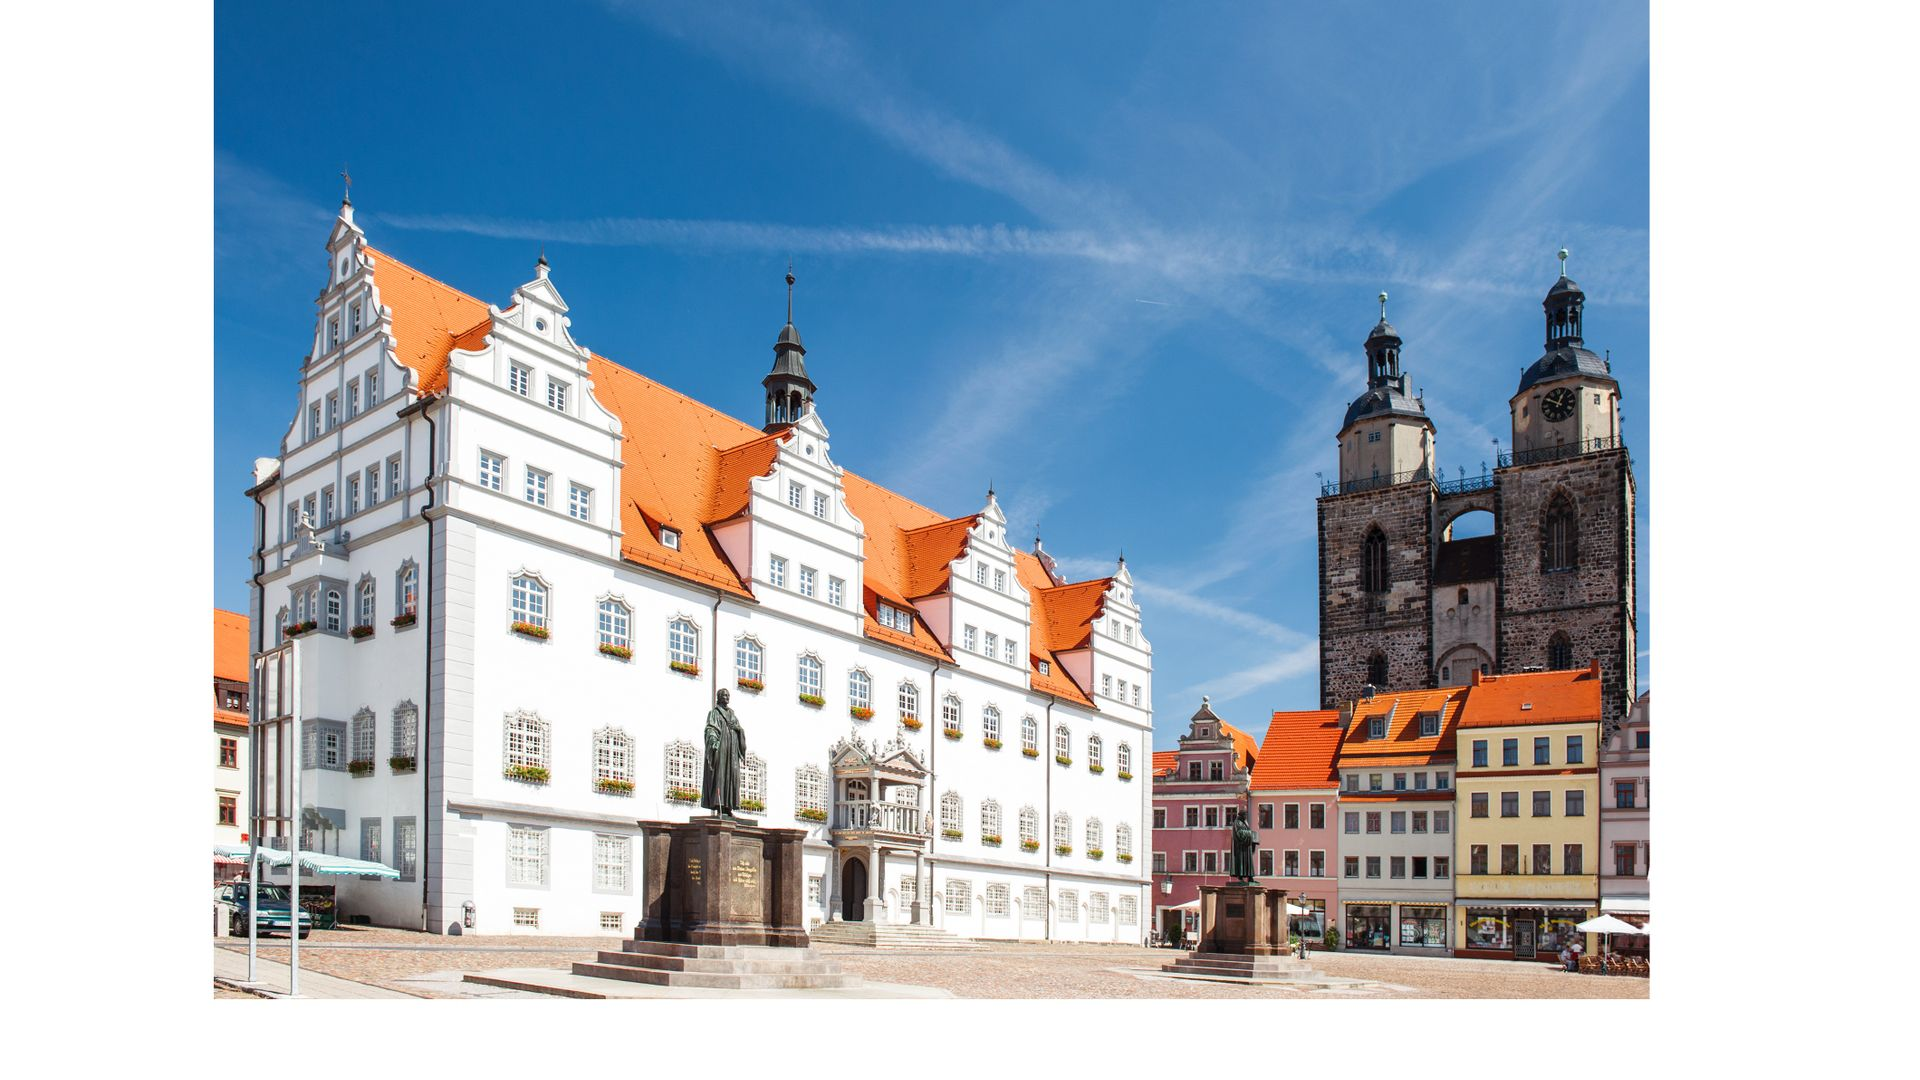 Monument de Martin Luther, square à Wittenberg - Allemagne ©iStock